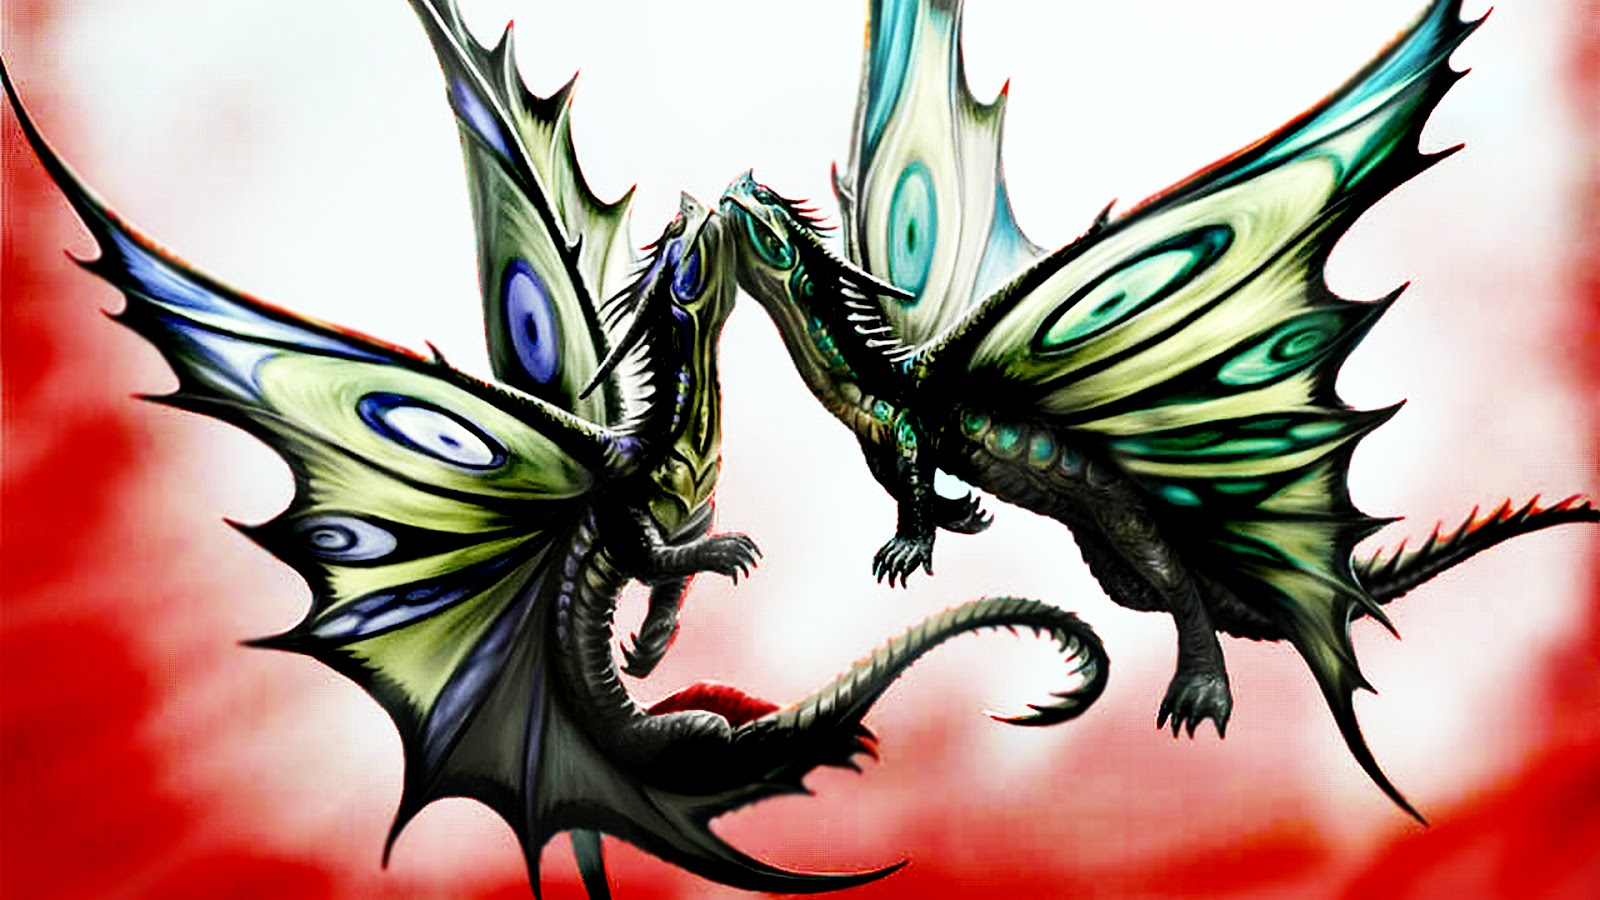 Romantic drawing of two dragons flying together